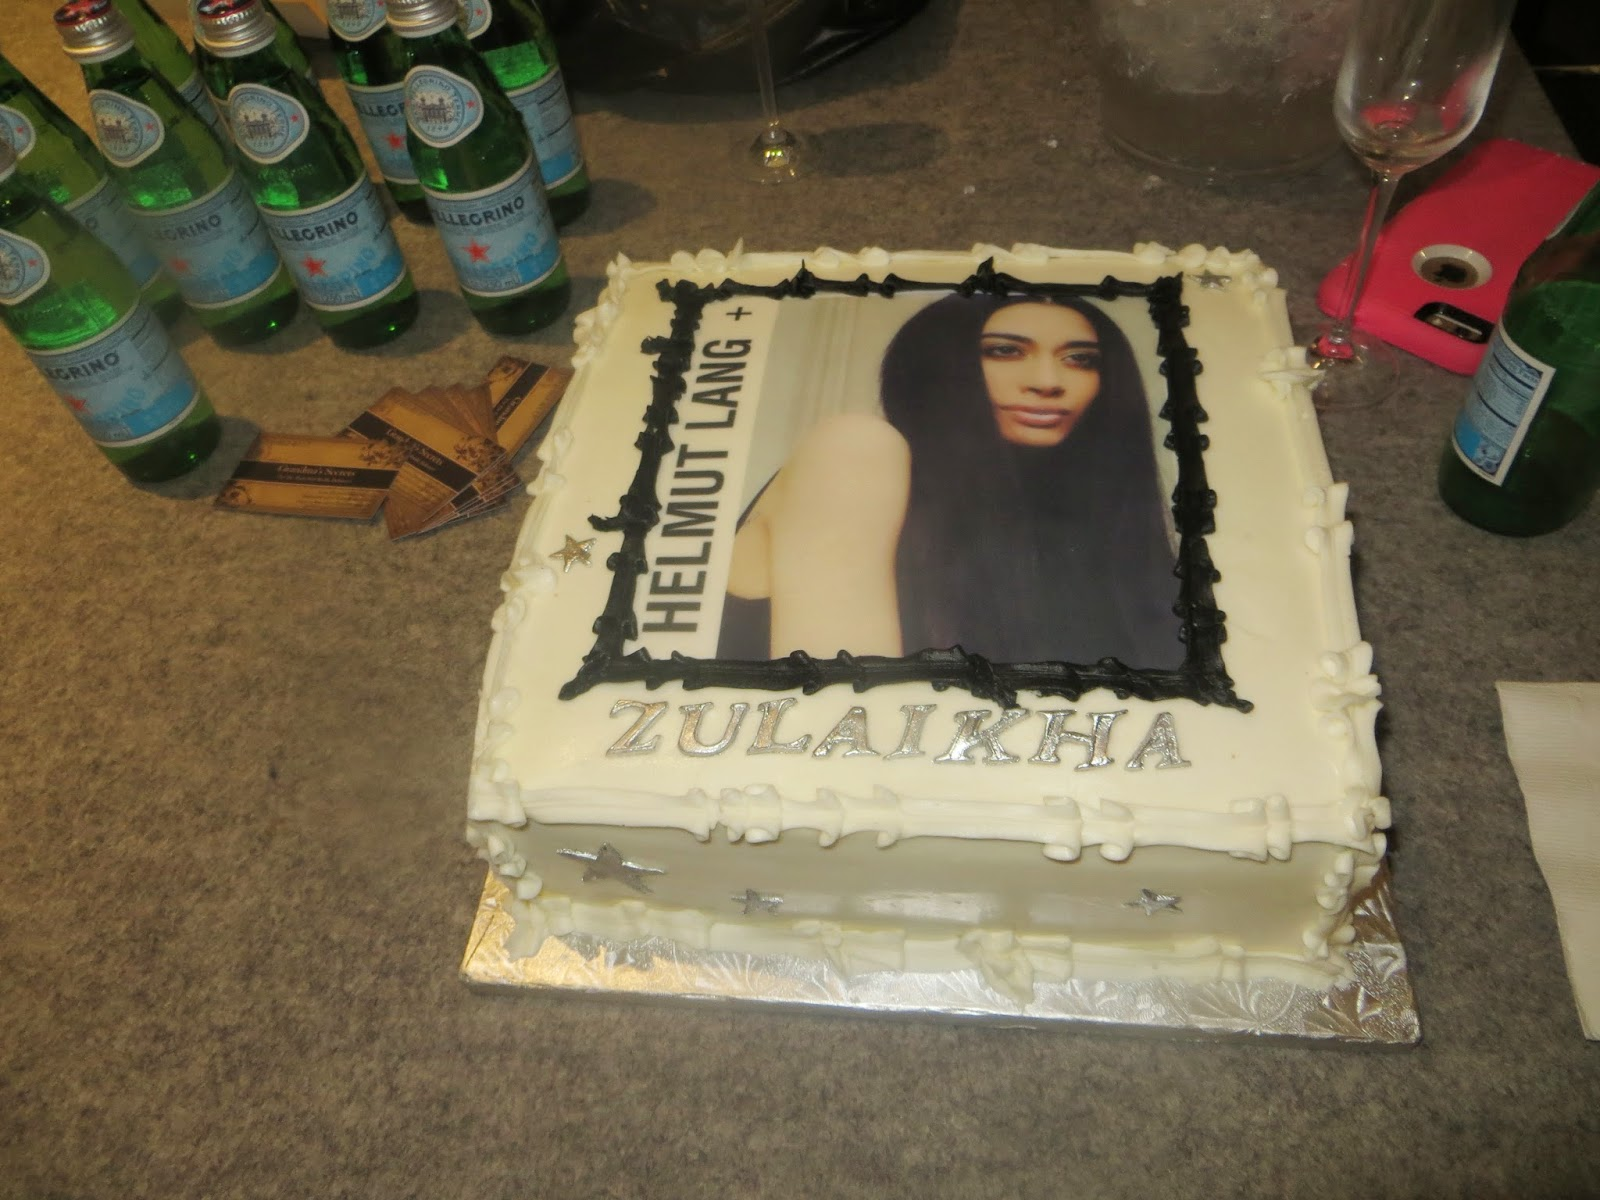 Custom Farah Zulaikha and Helmut Lang vanilla buttercream cake by Regina McRae of Grandma's Secrets NYC.